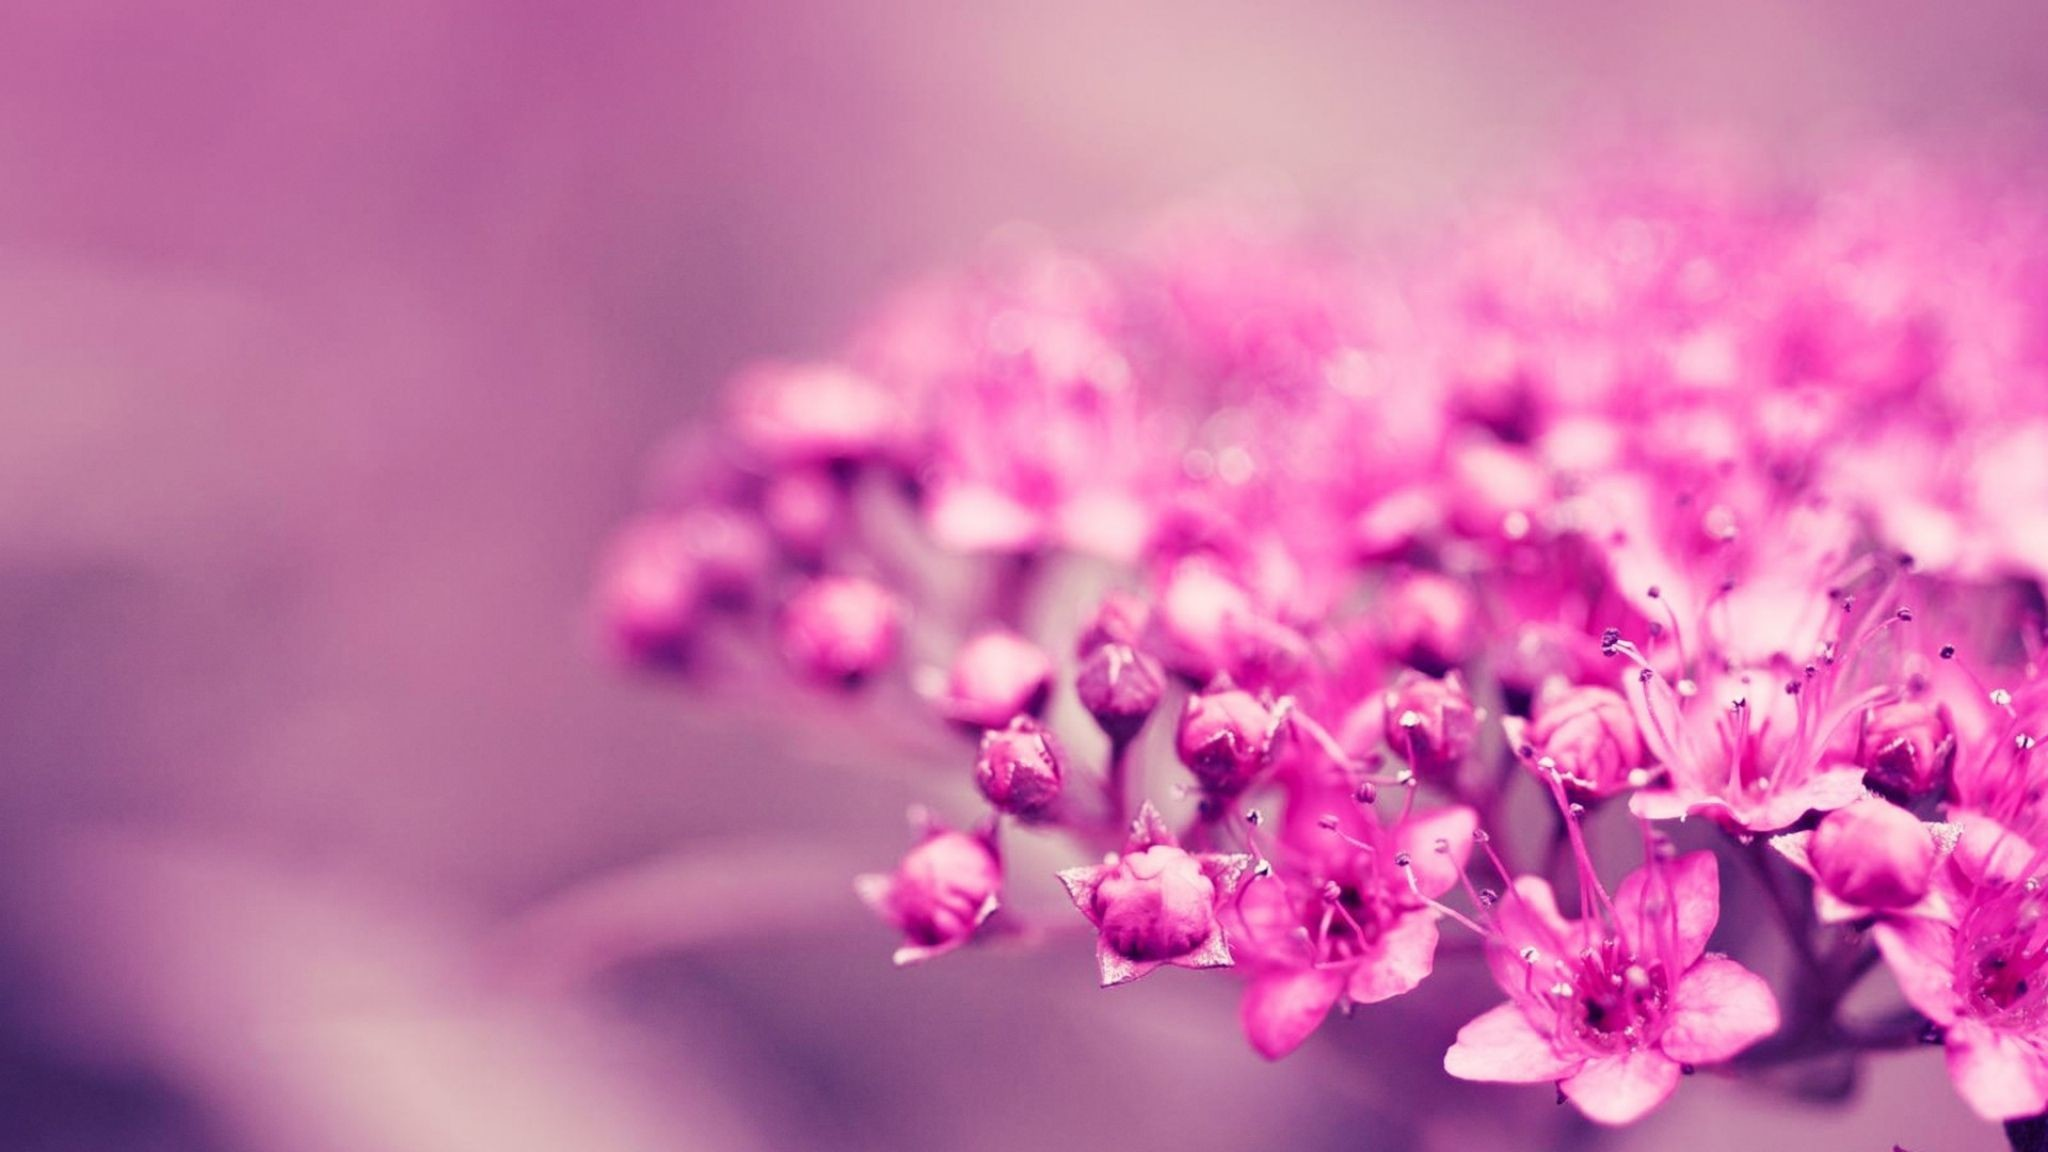 … free adorable flowery wallpaper …